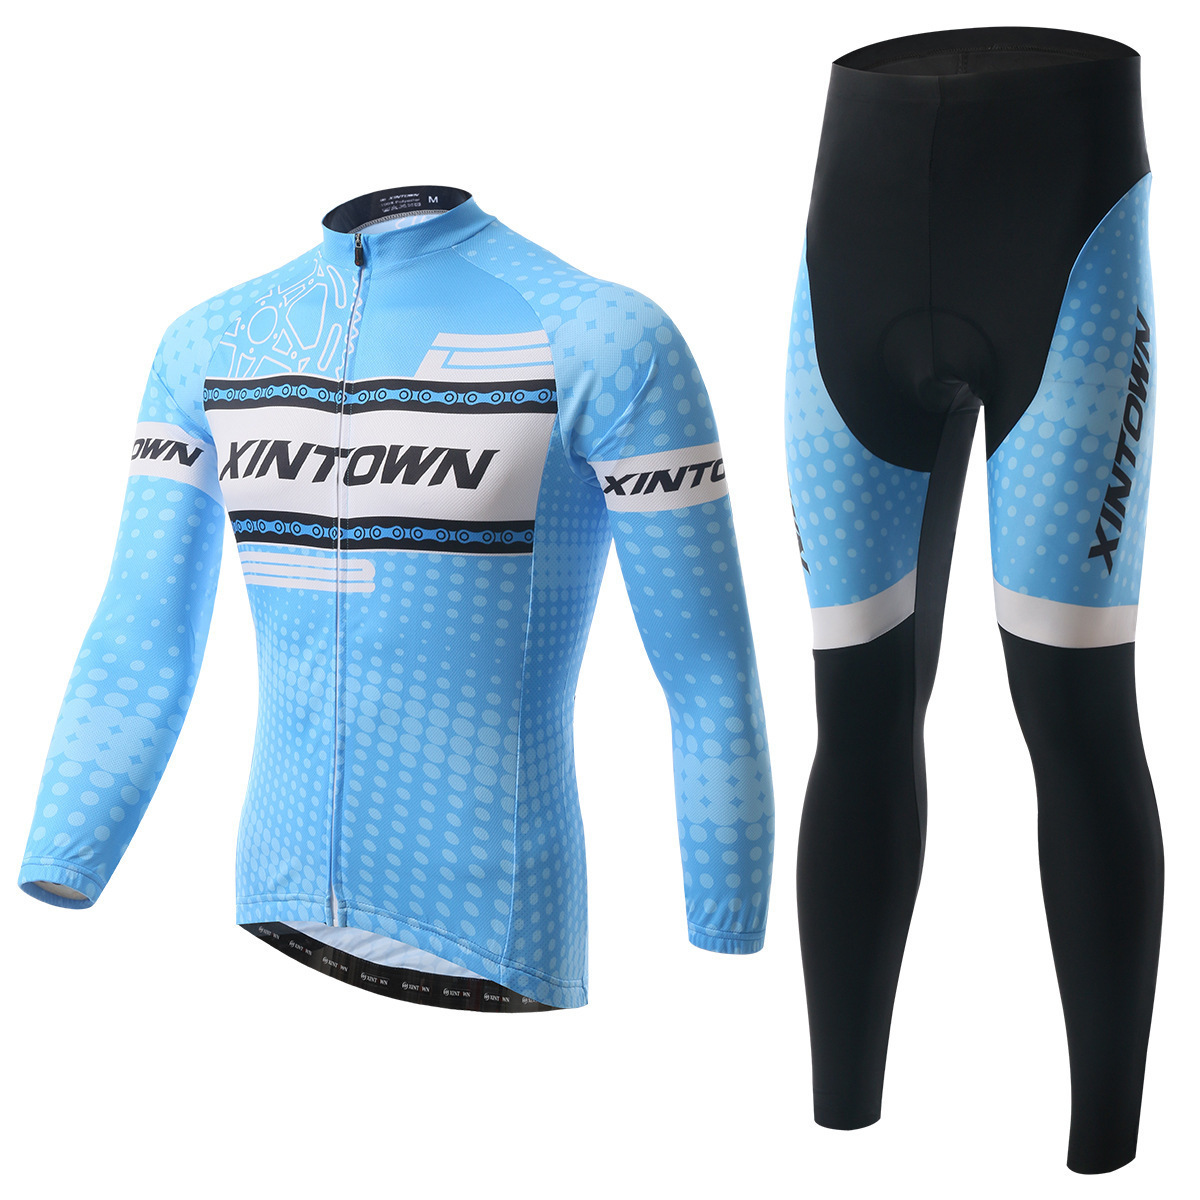 XINTOWN Cycling Jersey Set Long Sleeve Bicycle Clothing Maillot Ciclismo Bike Clothes Cycling Set For Men Spring Jersey Sets xintown new 2018 spring cycling jersey set long sleeve 3d gel padded sets bike clothing mtb protective wear cycling clothes sets